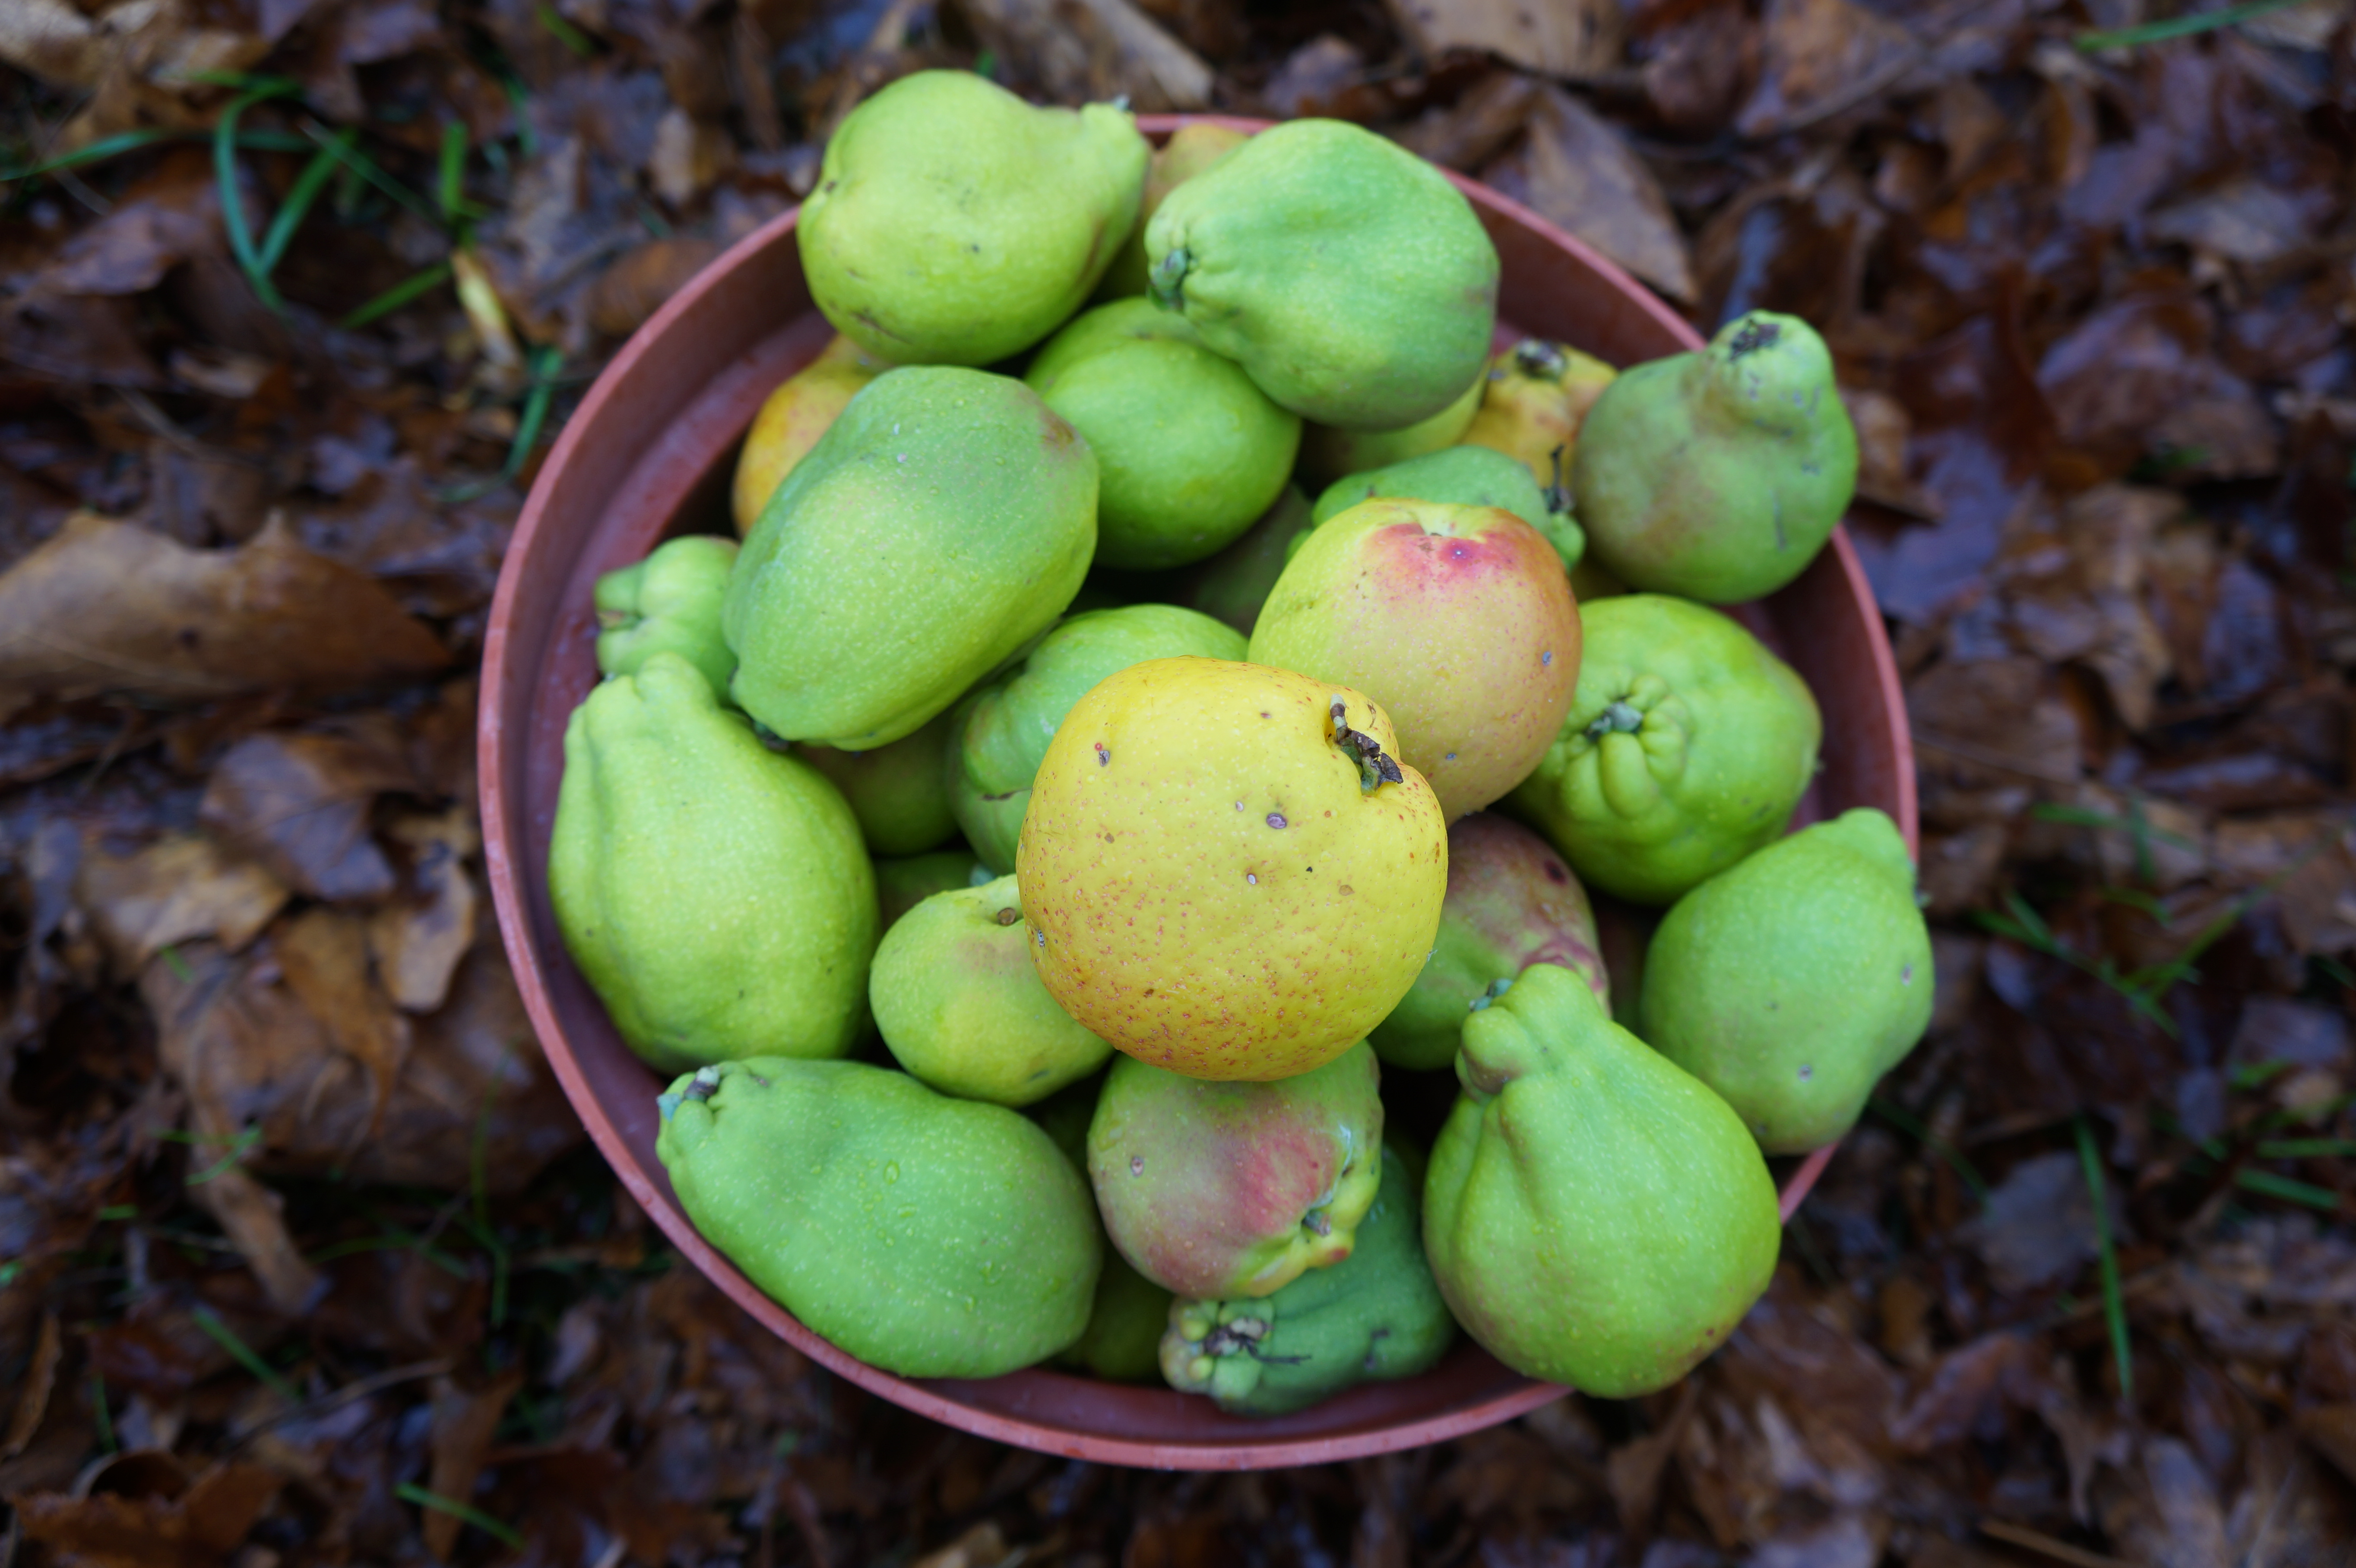 Japanese quinces of varying colours, sizes and shapes, all from one plant